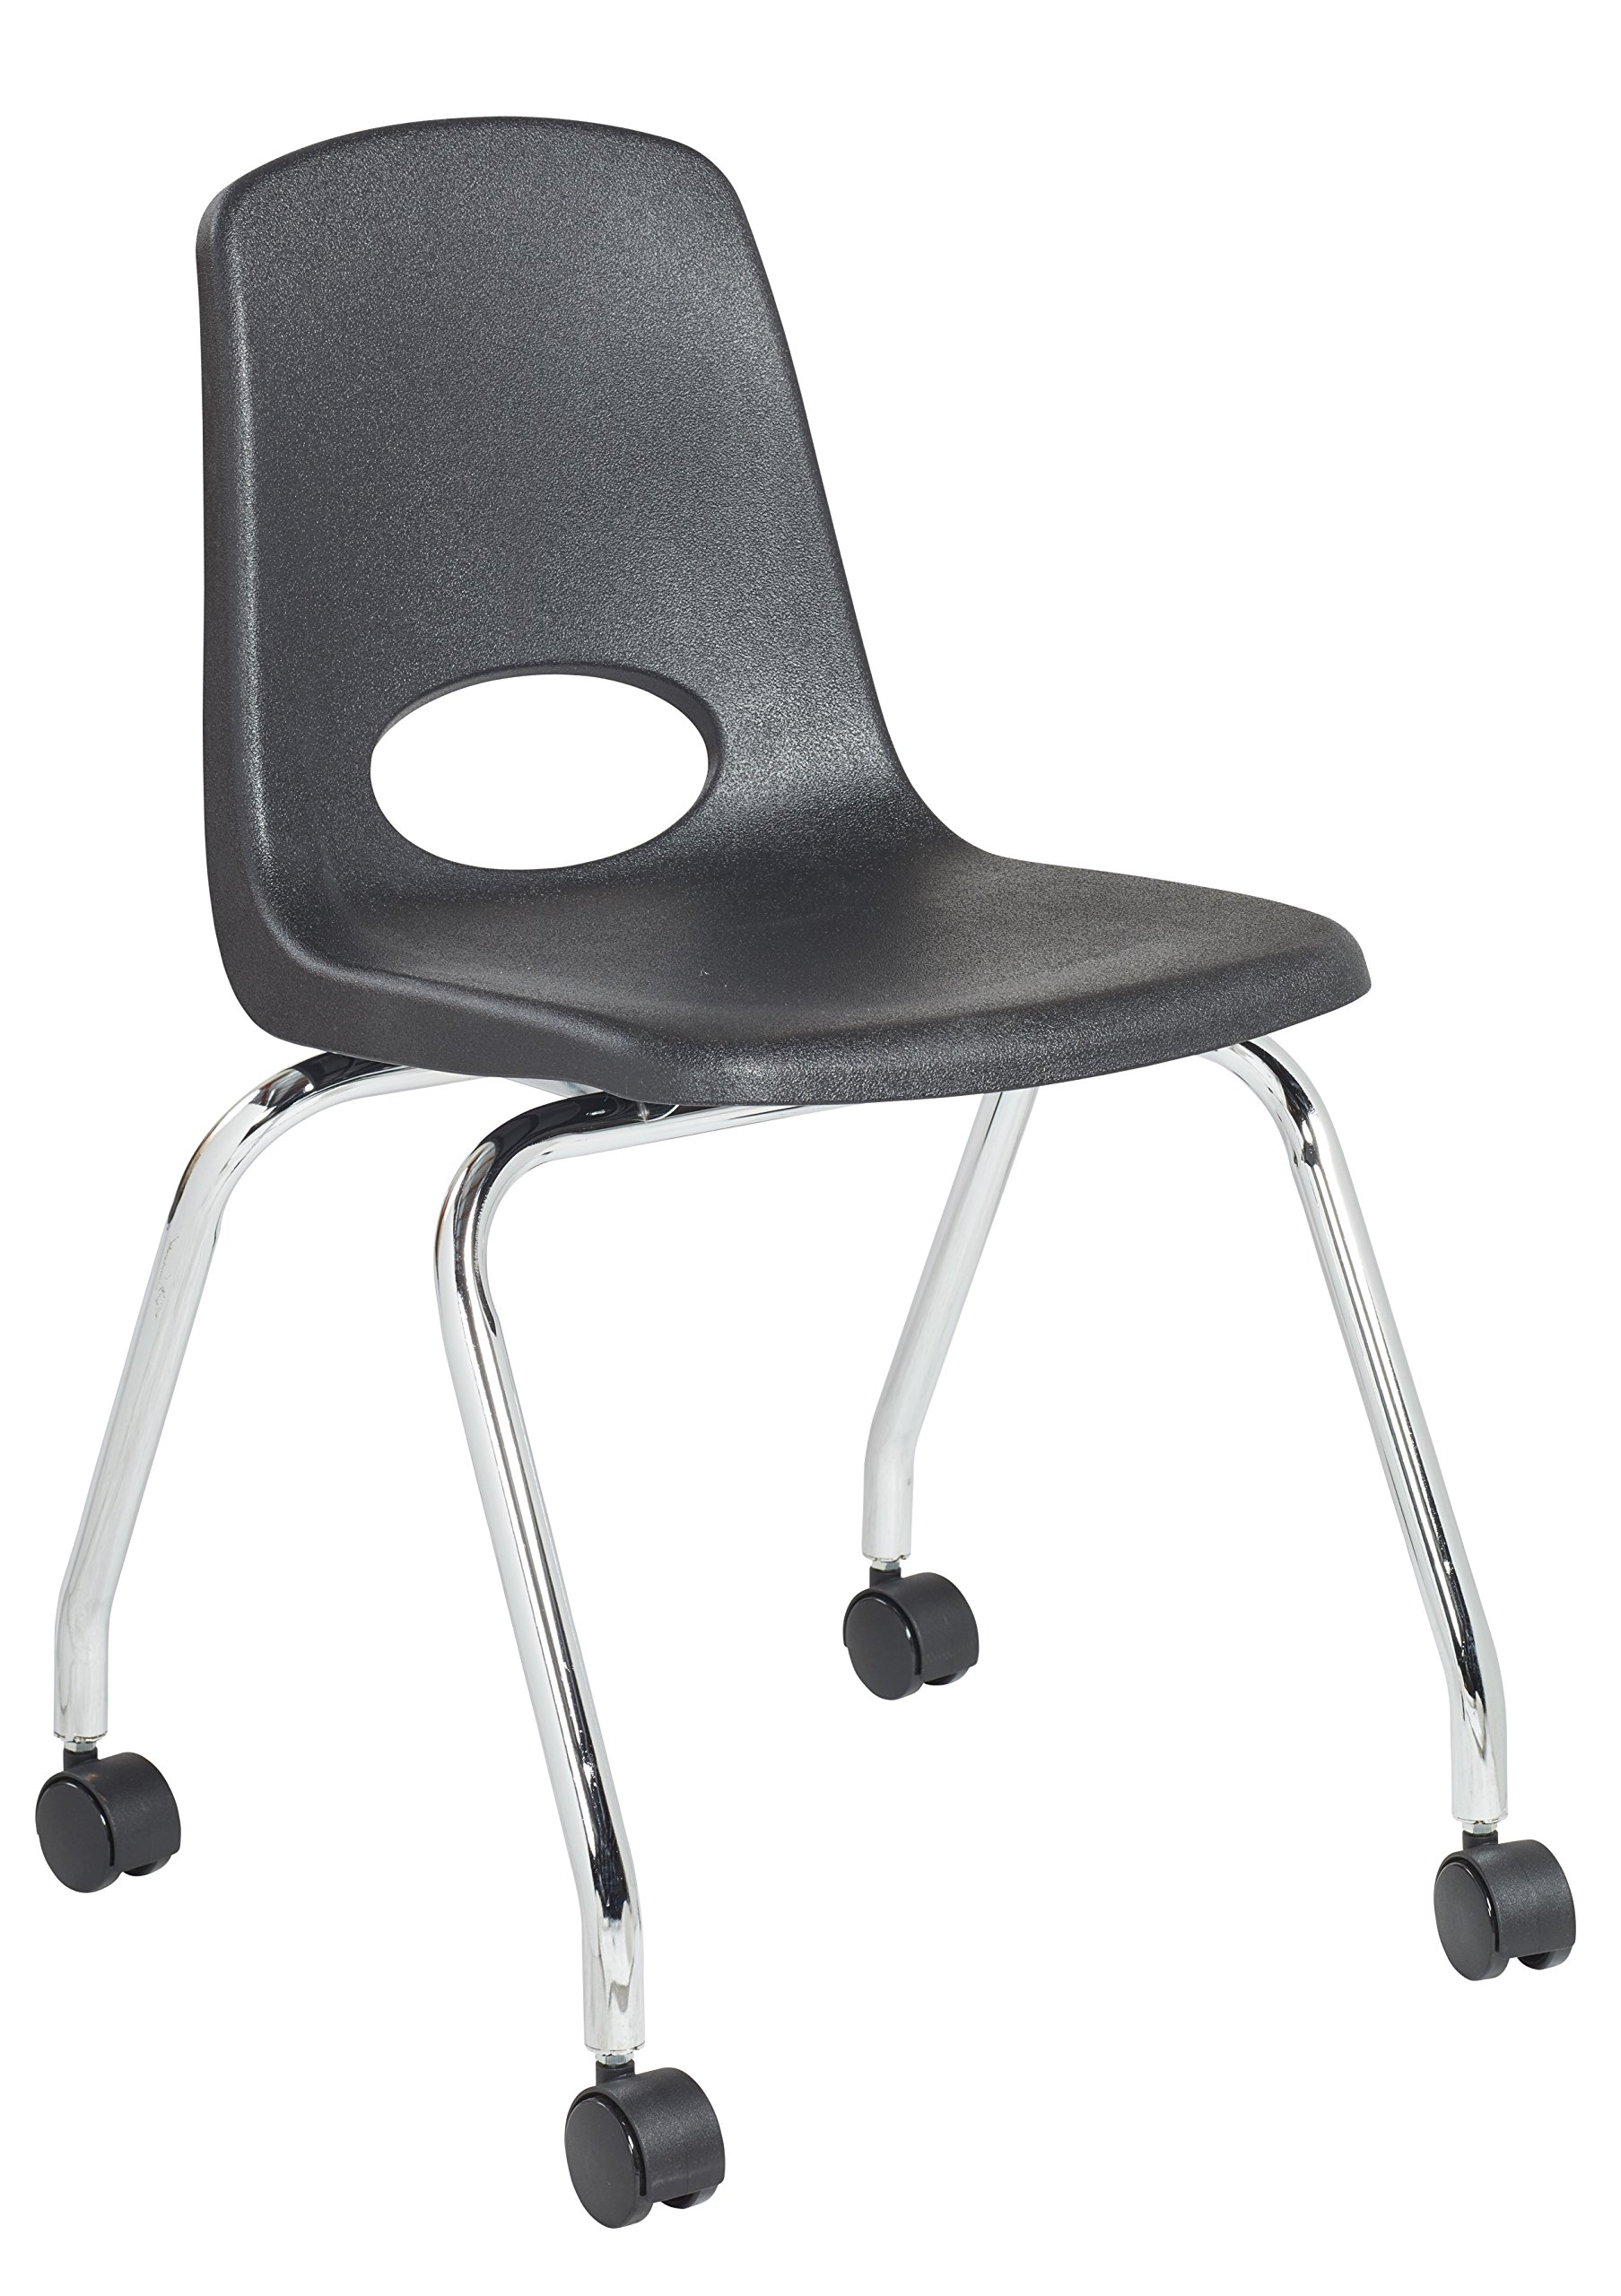 ECR4Kids 18'' Mobile School Chair with Wheels, Classroom Seat for Kid/Teens/Adults, Black (2-Pack)